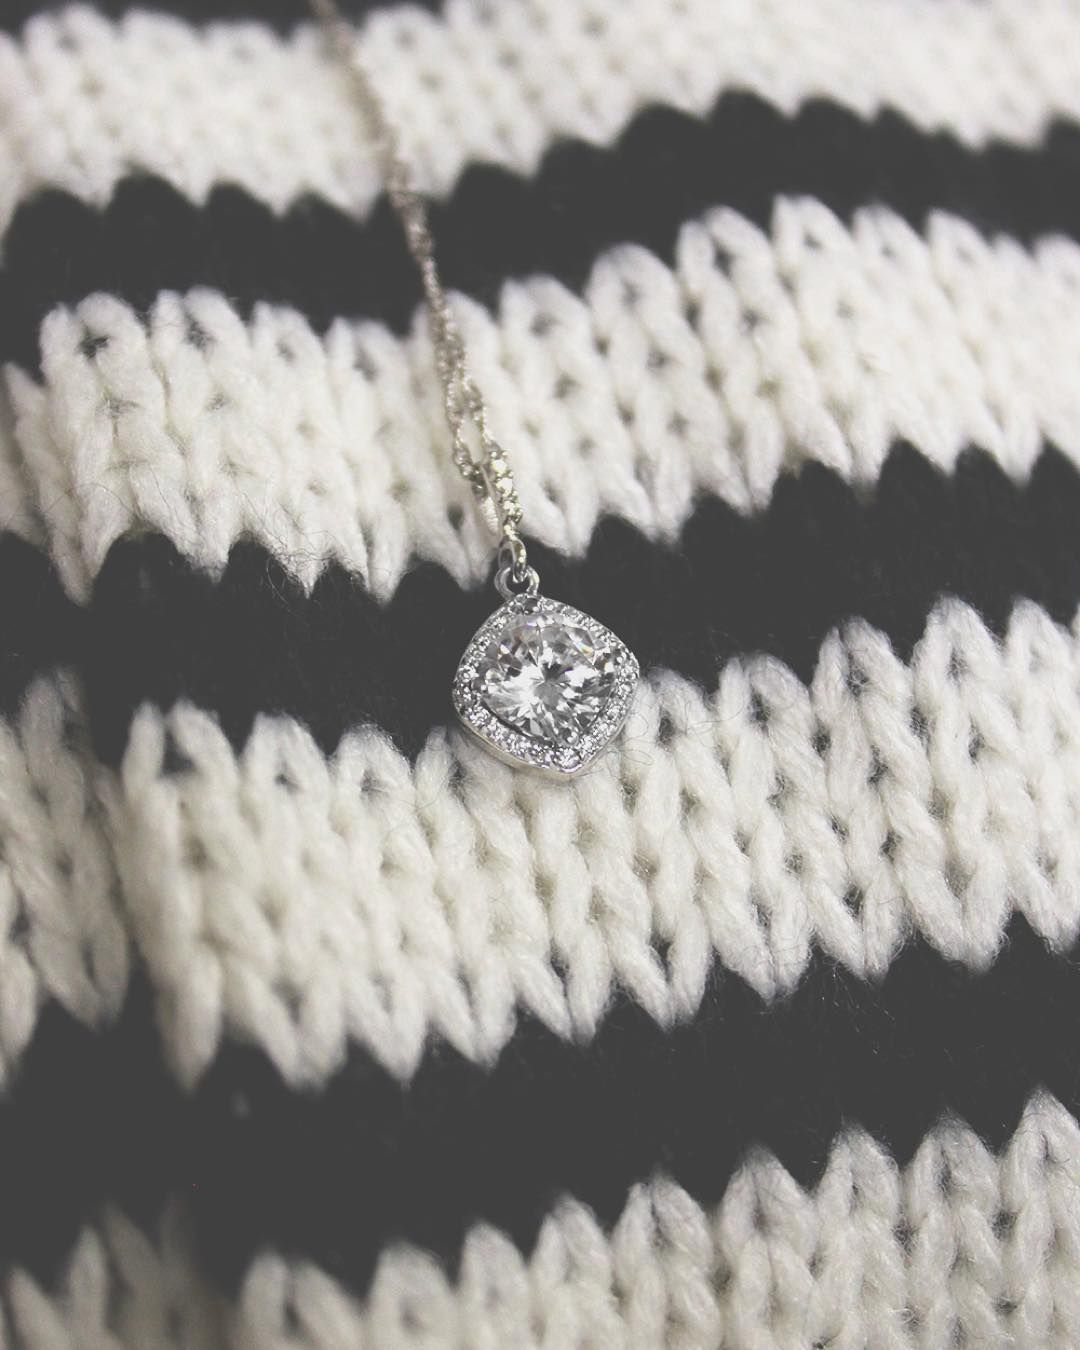 This antique halo pendant is set with a beautiful 1.0ct cushion cut diamond hybrid. Did you know it's also able to be set with our lab-created gemstones!?